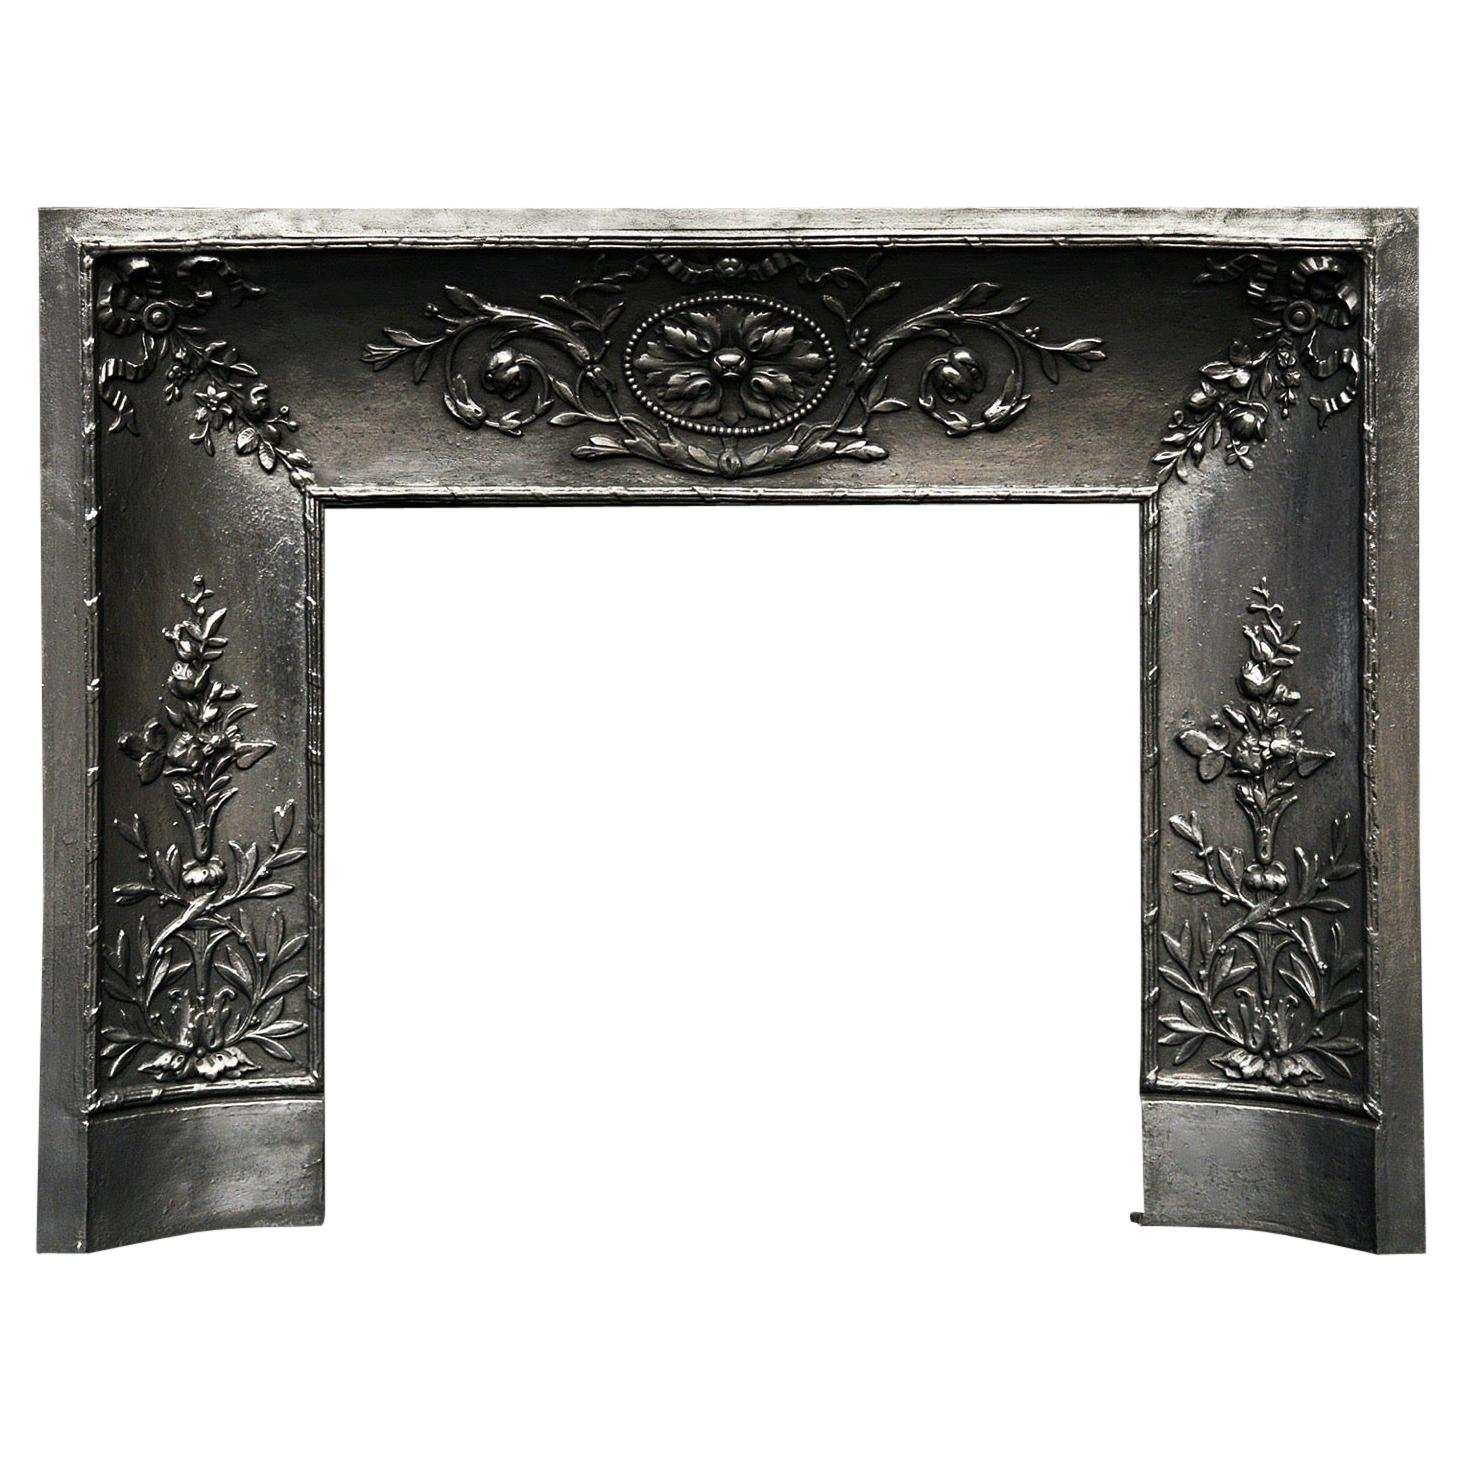 Fine Quality Cast Iron Contracoeur Insert